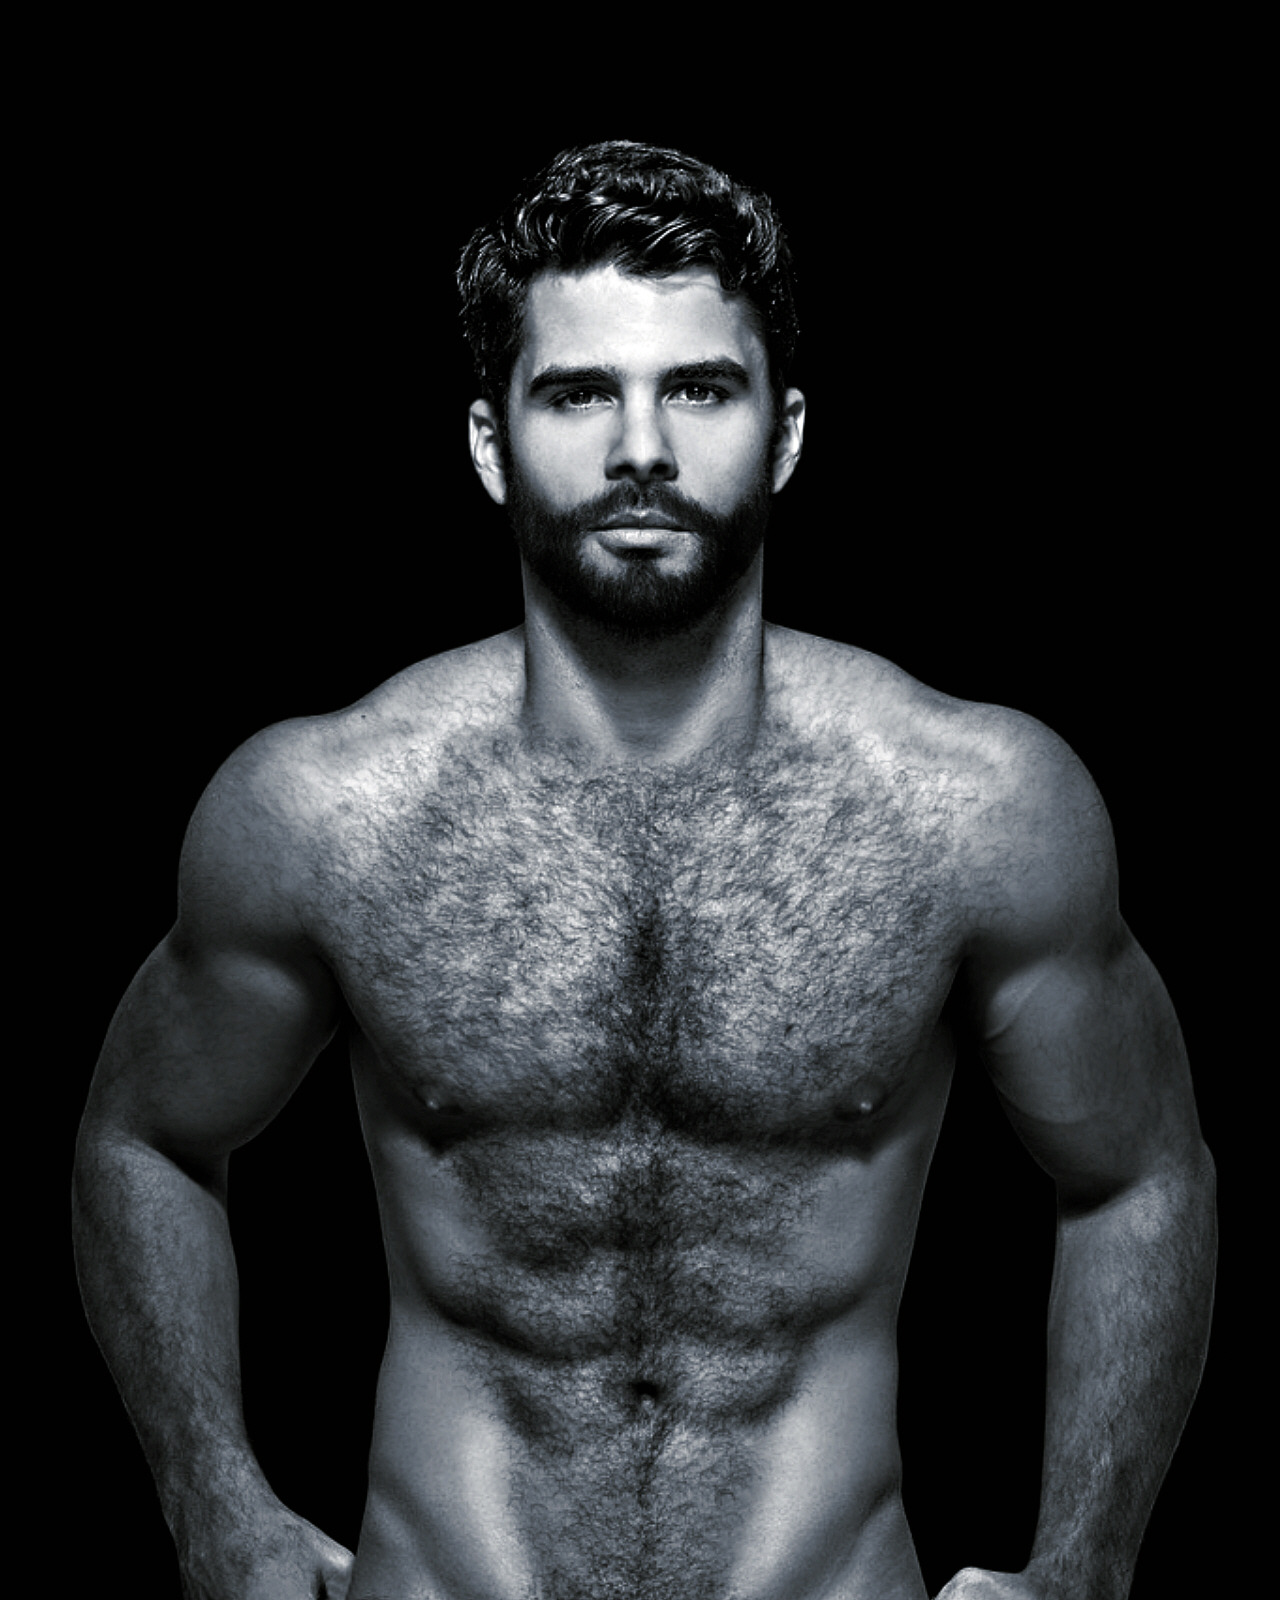 hot4hairy:  H O T 4 H A I R Y  Tumblr |  Twitter | Email | Archive | Follow HAIR HAIR EVERYWHERE!